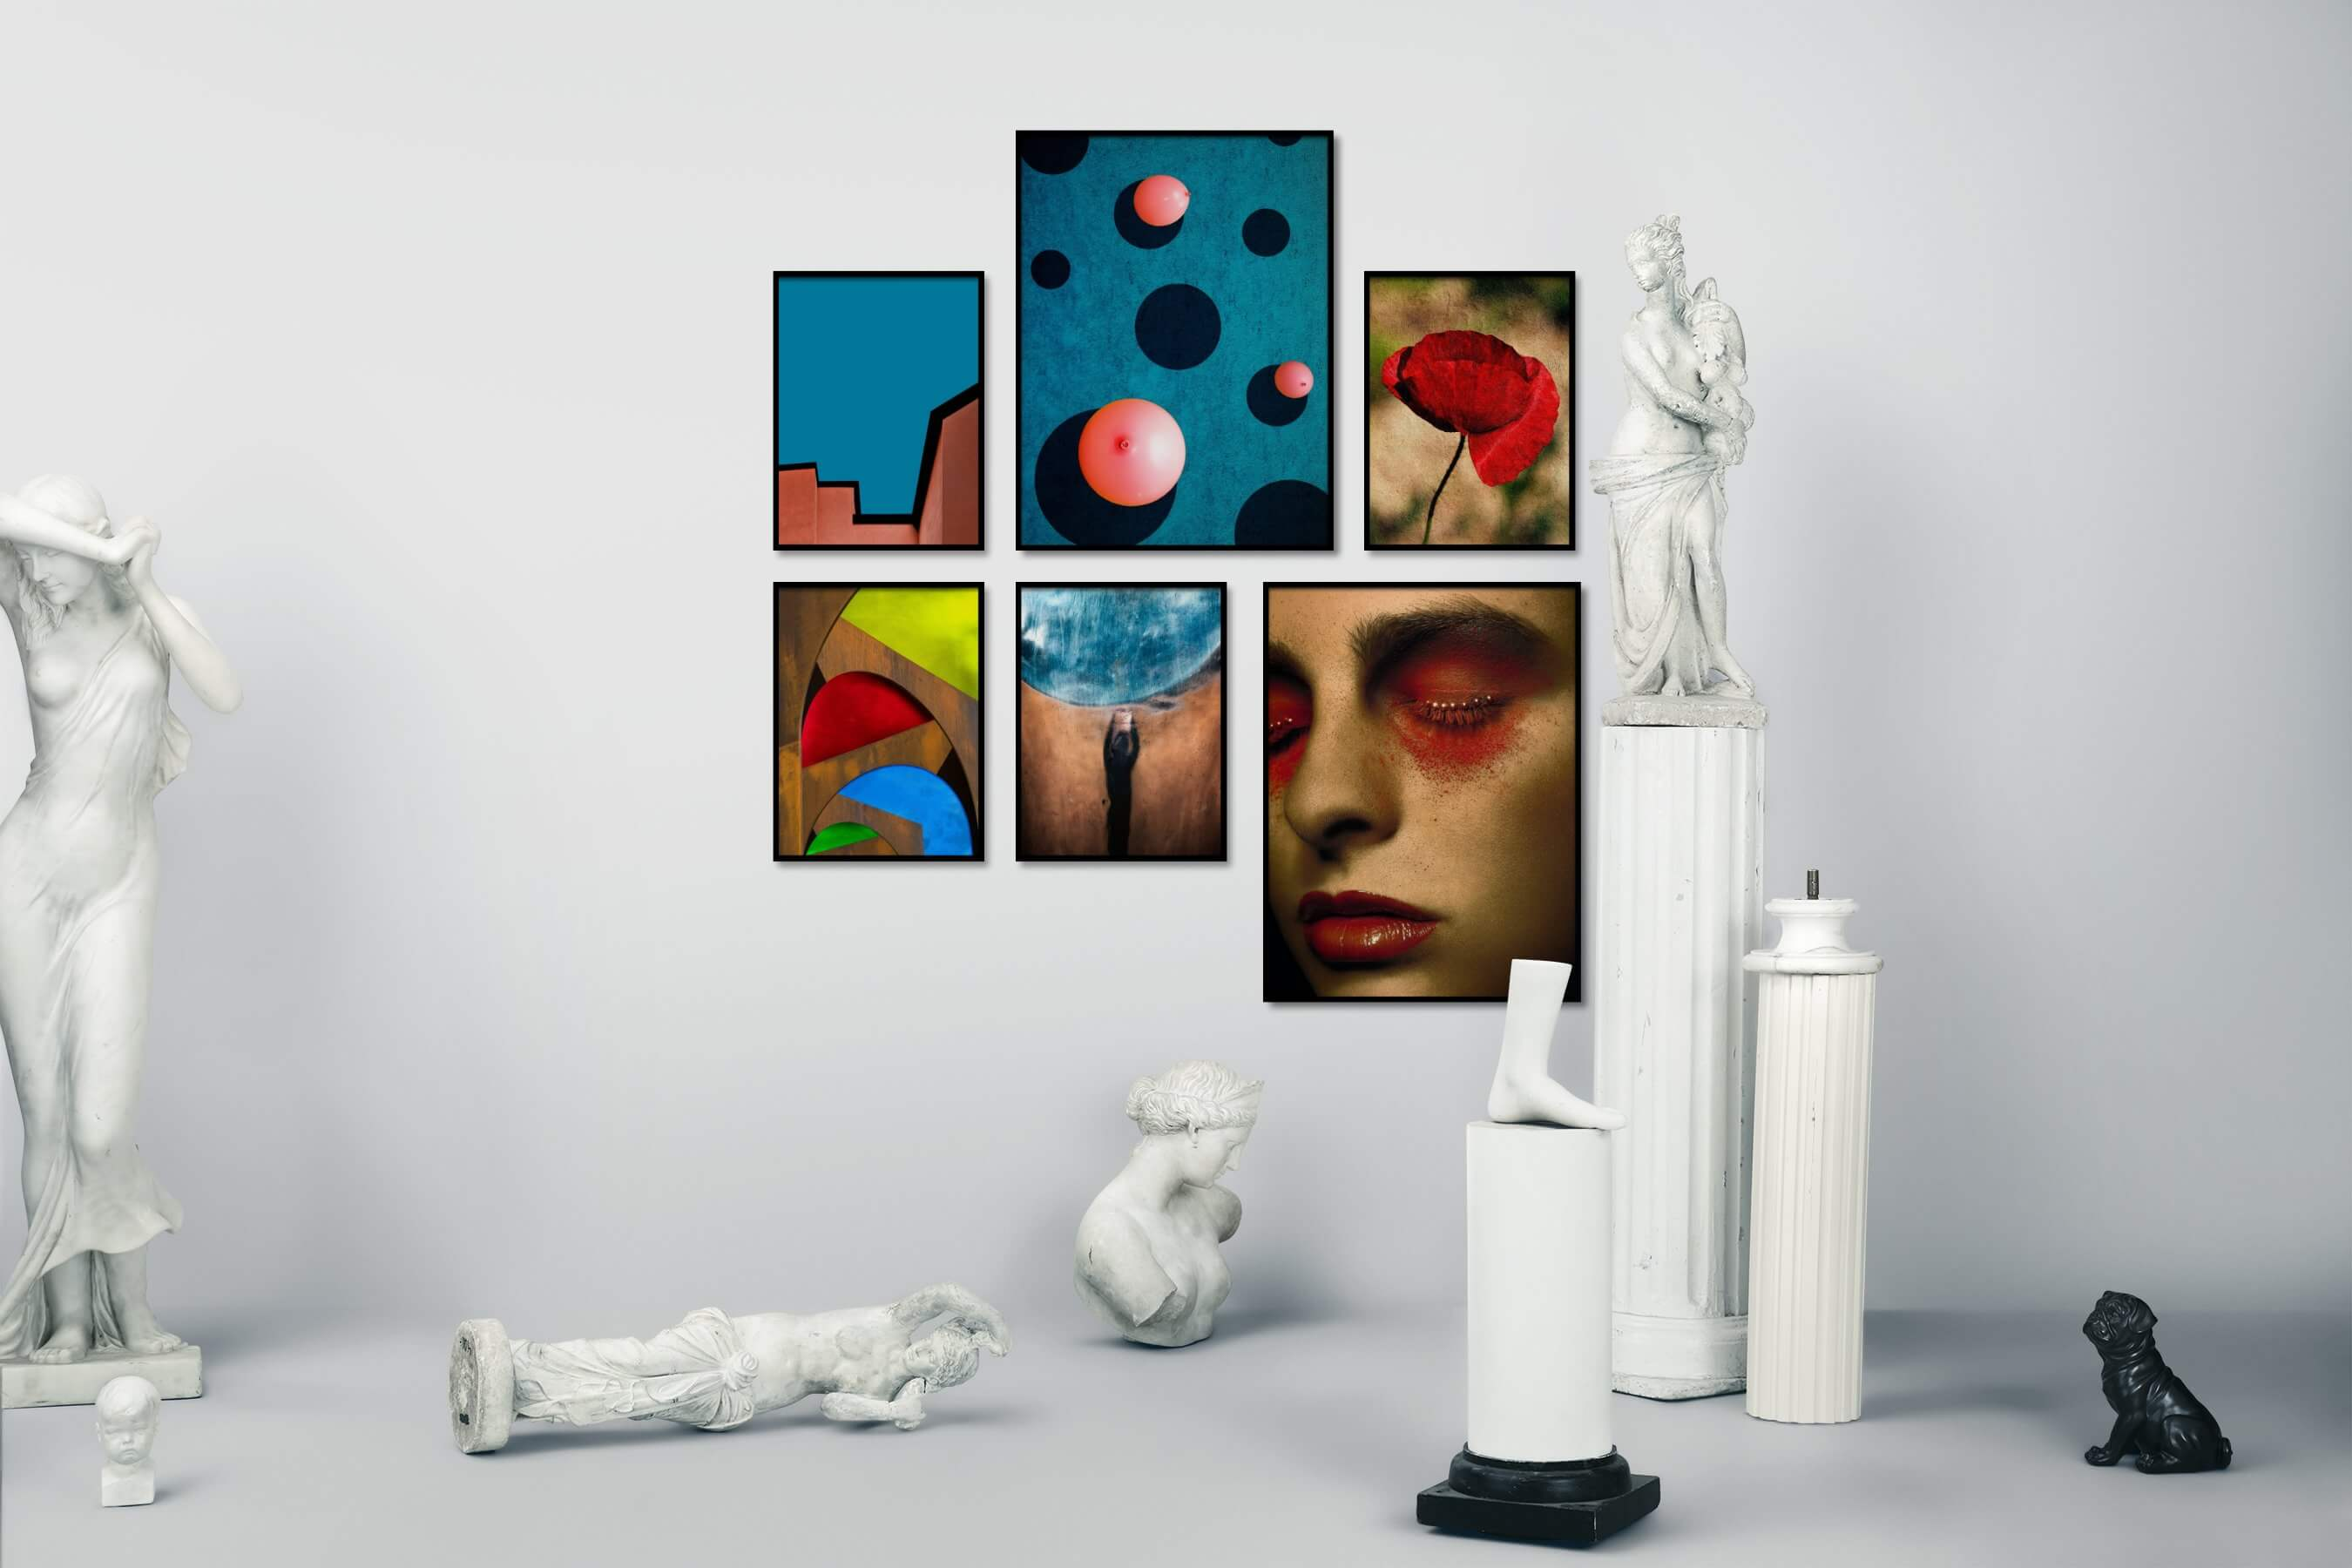 Gallery wall idea with six framed pictures arranged on a wall depicting For the Minimalist, Colorful, For the Maximalist, Artsy, For the Moderate, Fashion & Beauty, Flowers & Plants, and Vintage